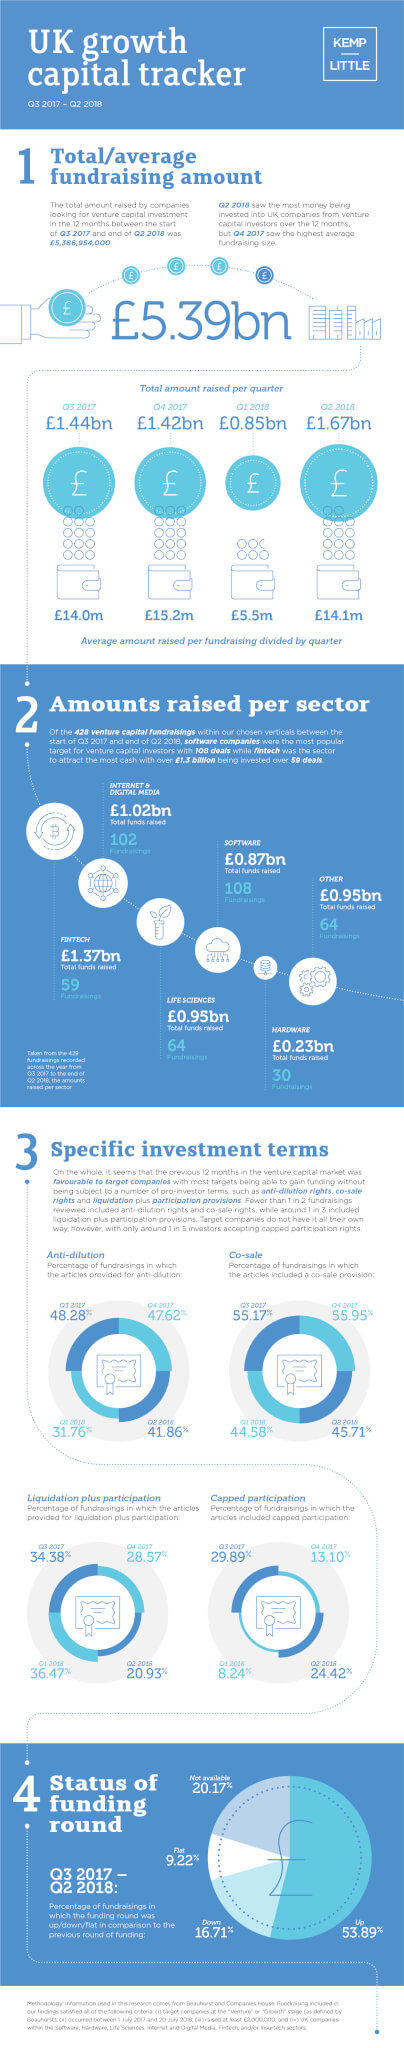 UK growth capital tracker